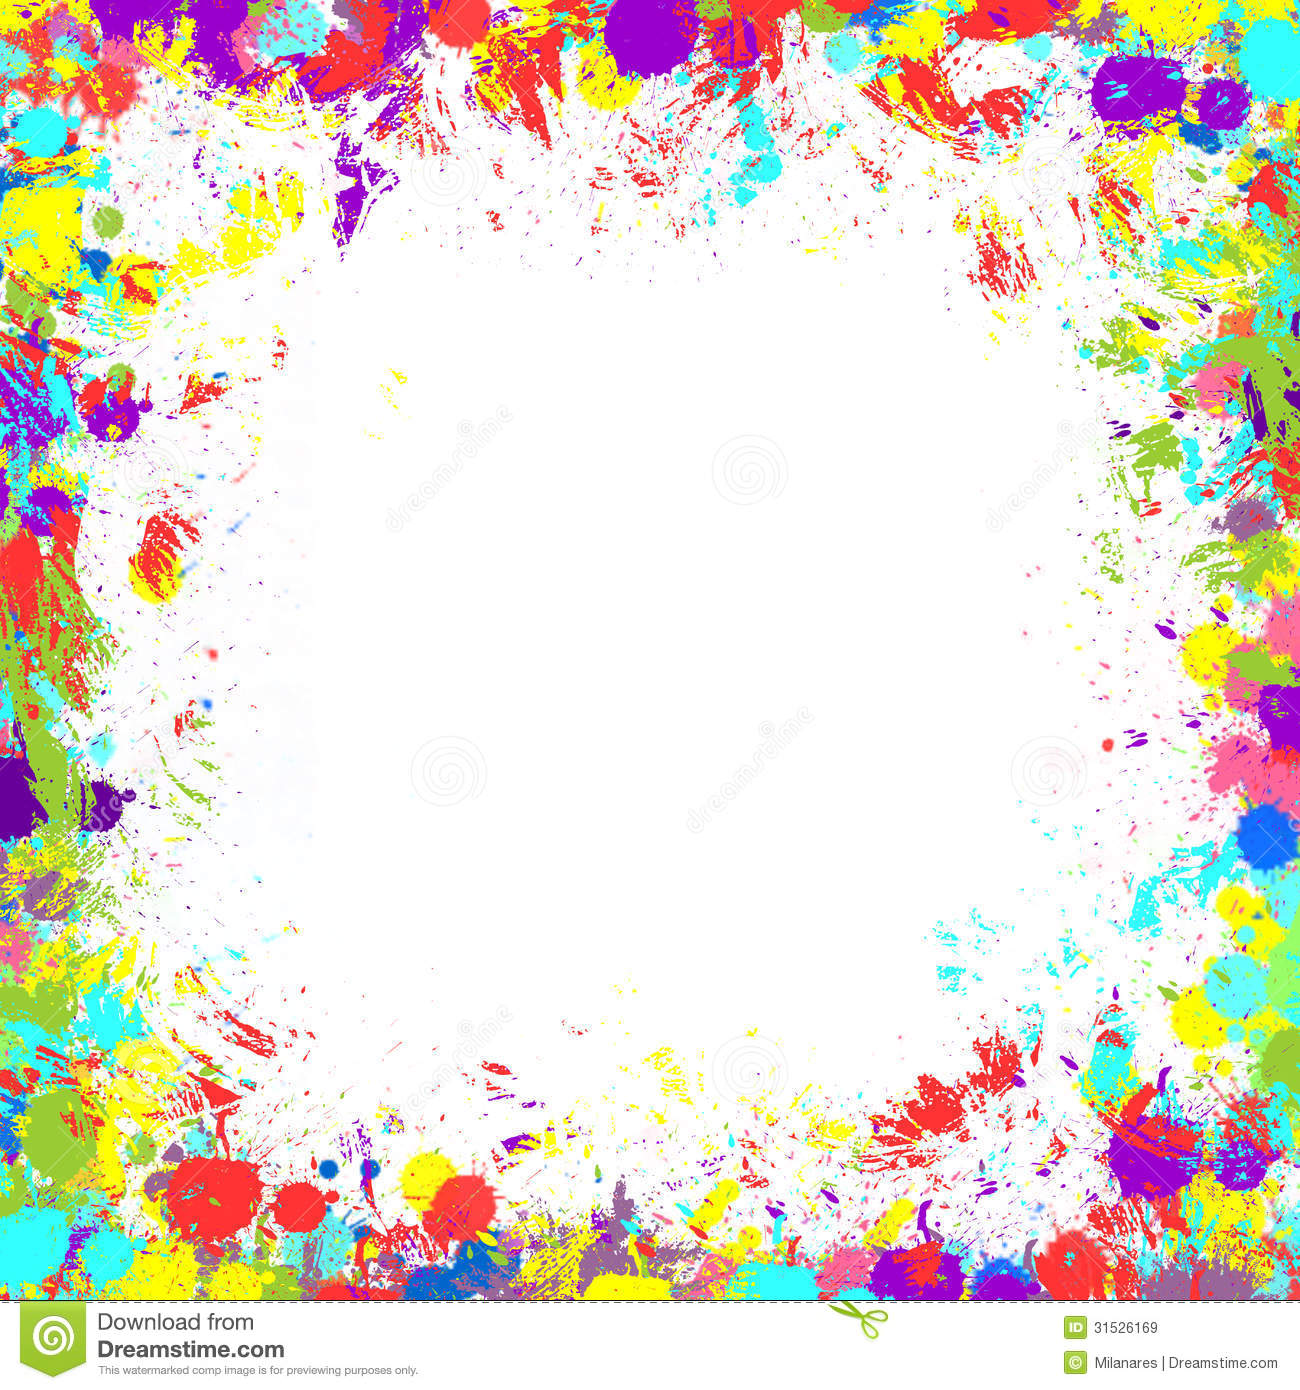 Colorful Inky Splash Frame Border Royalty Free Stock Images   Image